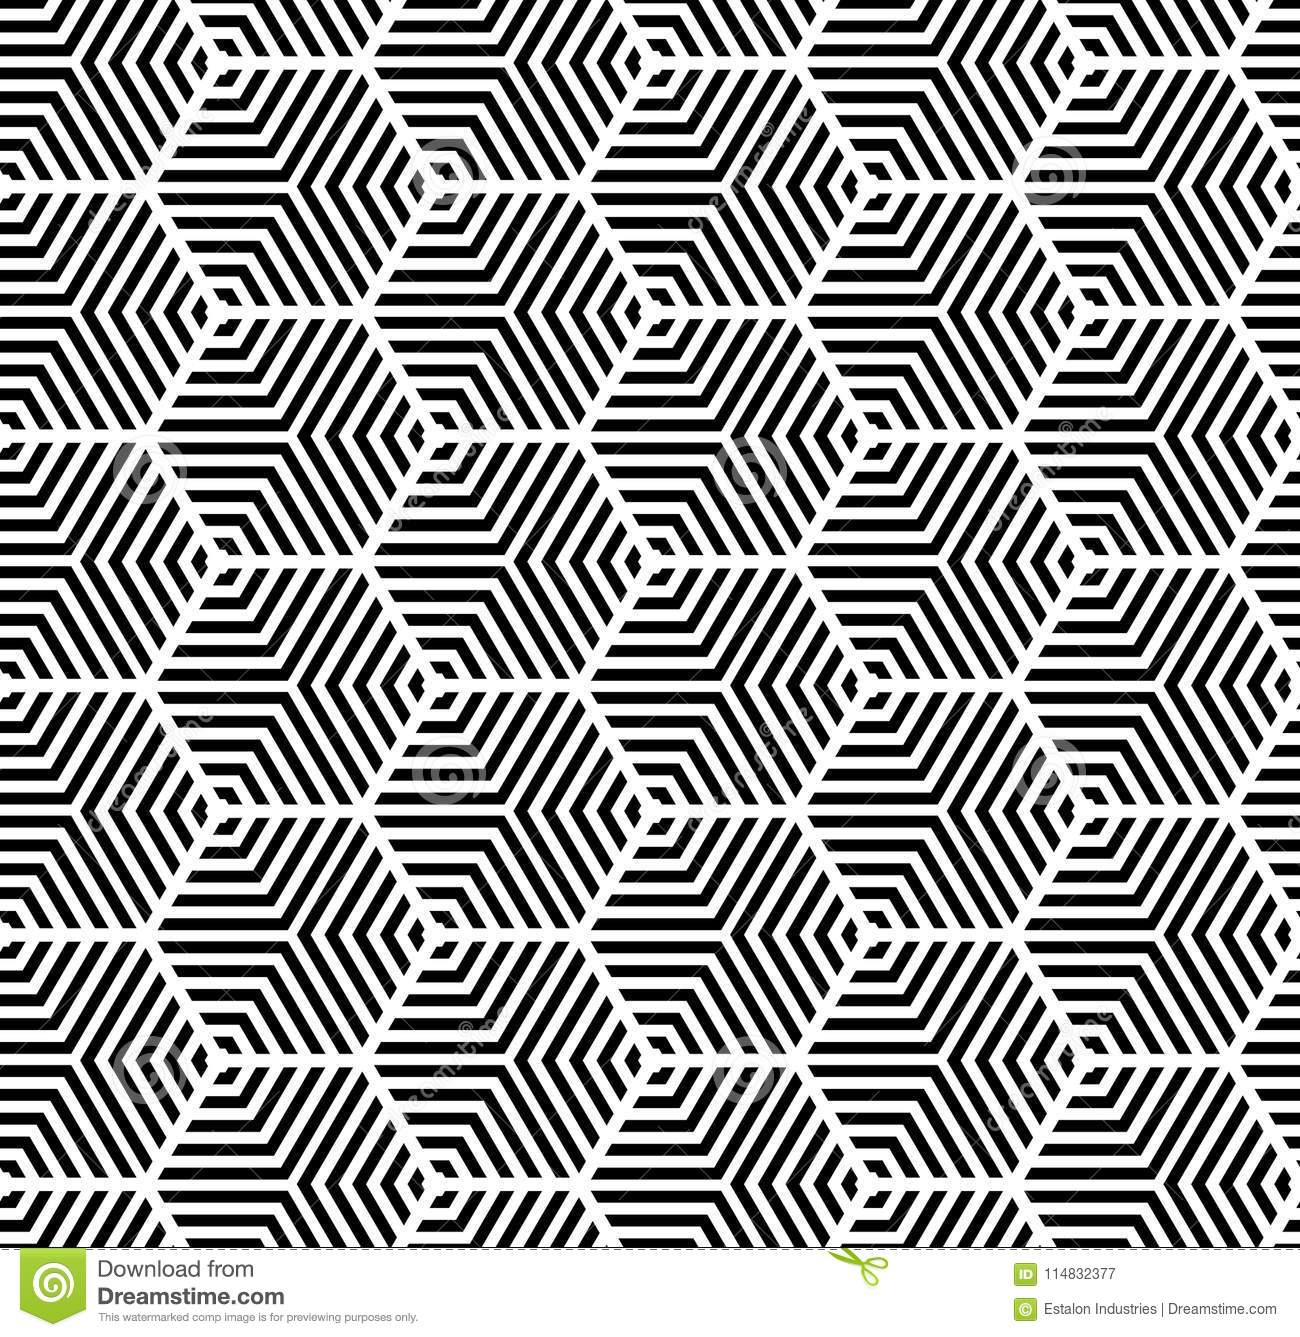 Black on white multi hexagonal line pattern seamless repeat background